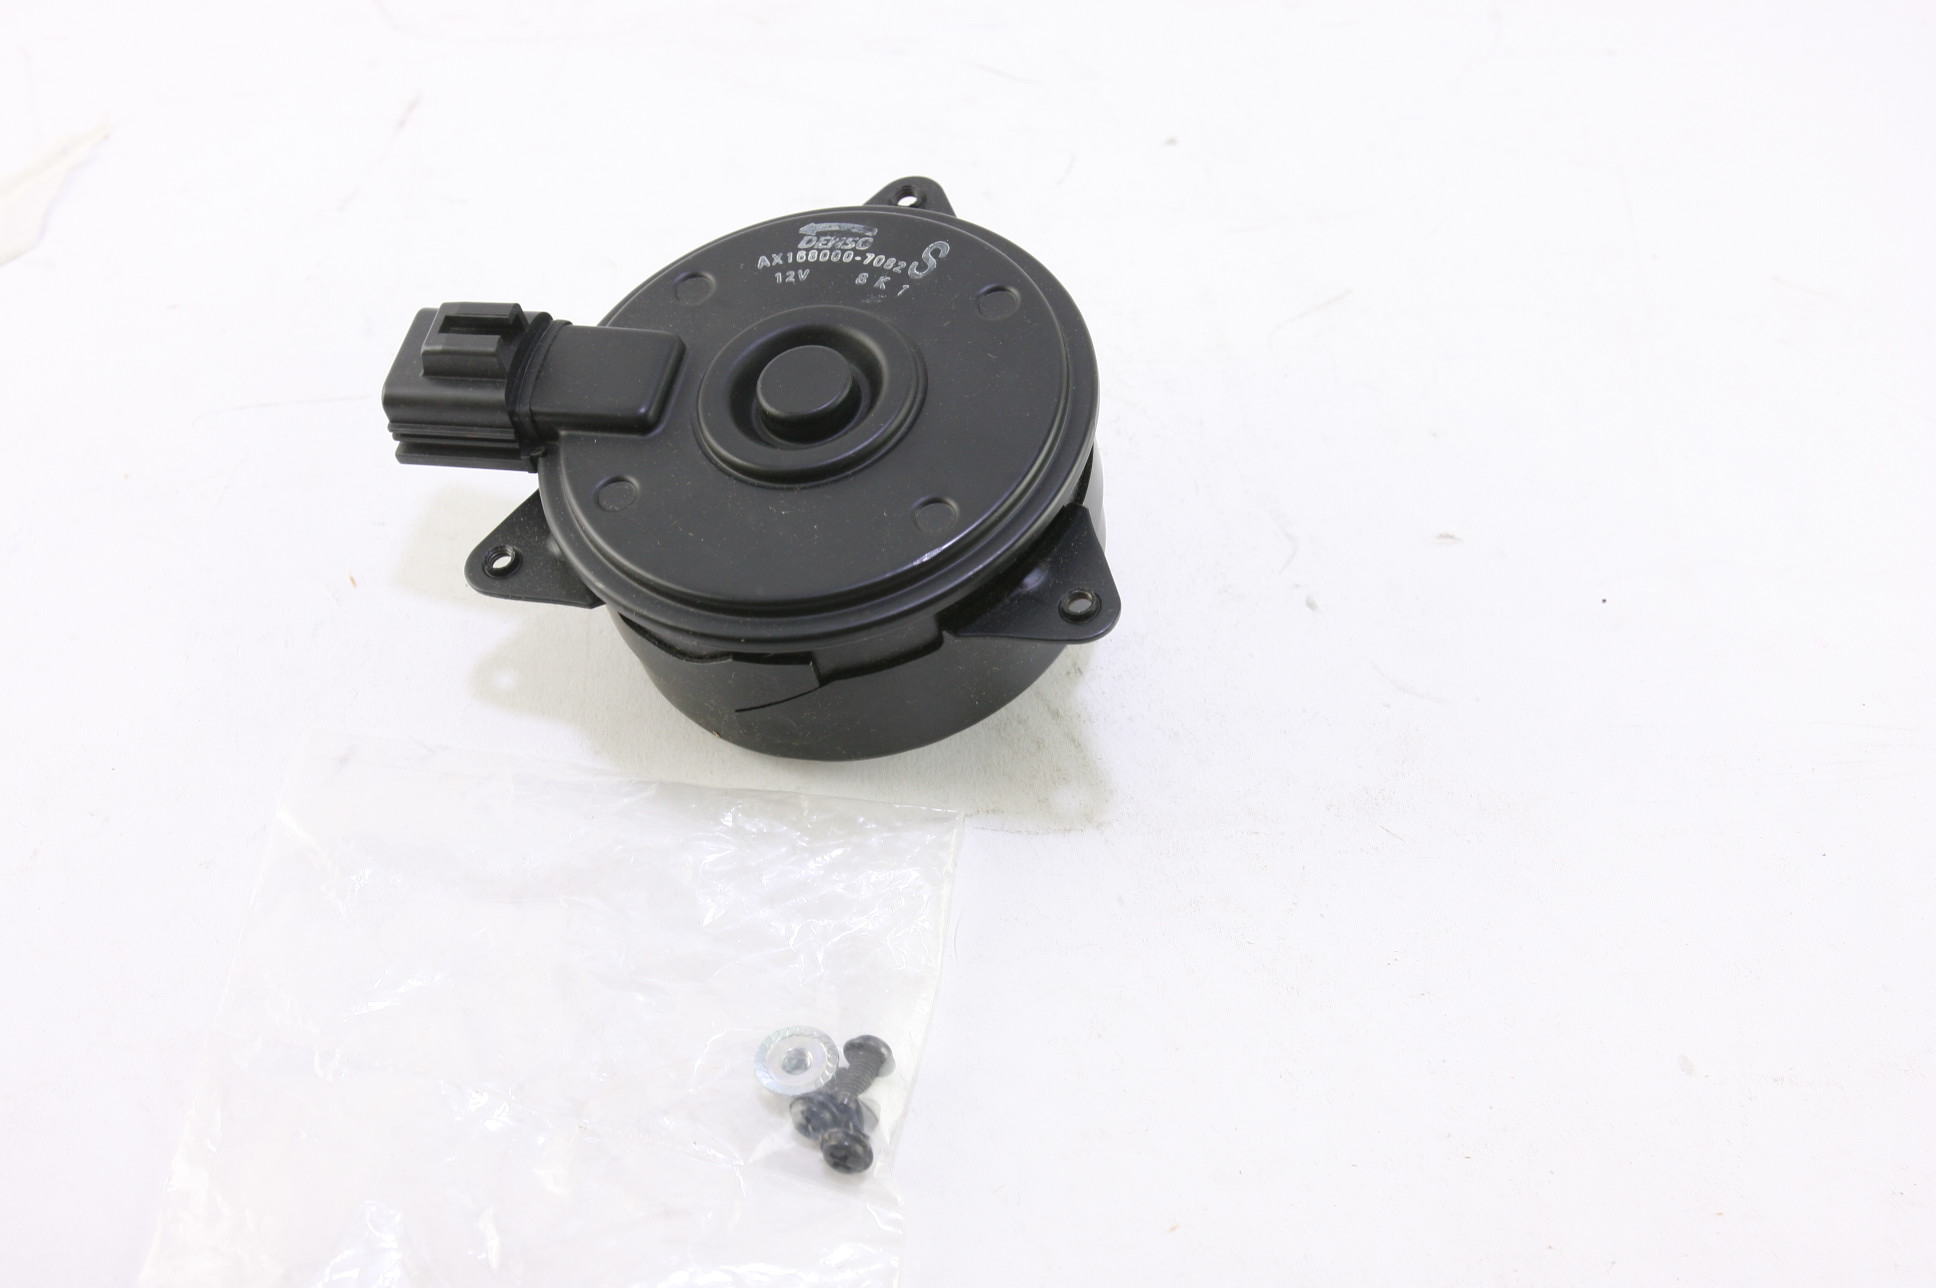 *~ New OEM ACDelco 15-80541 GM 89022525 Engine Coolant Fan Motor Connector RH - image 1